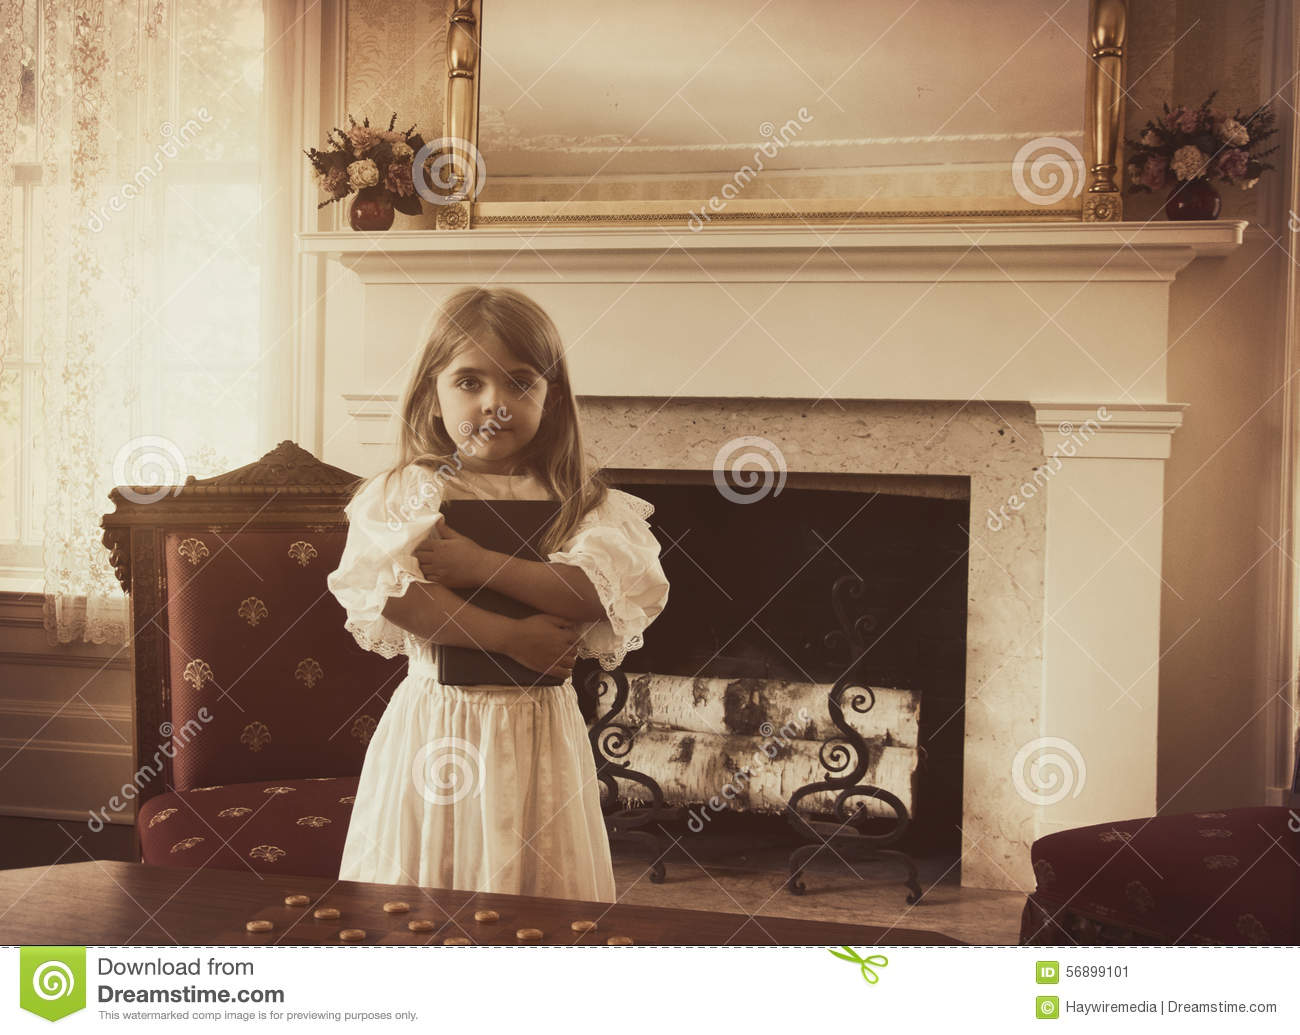 Vintage Child Holding School Book in Home